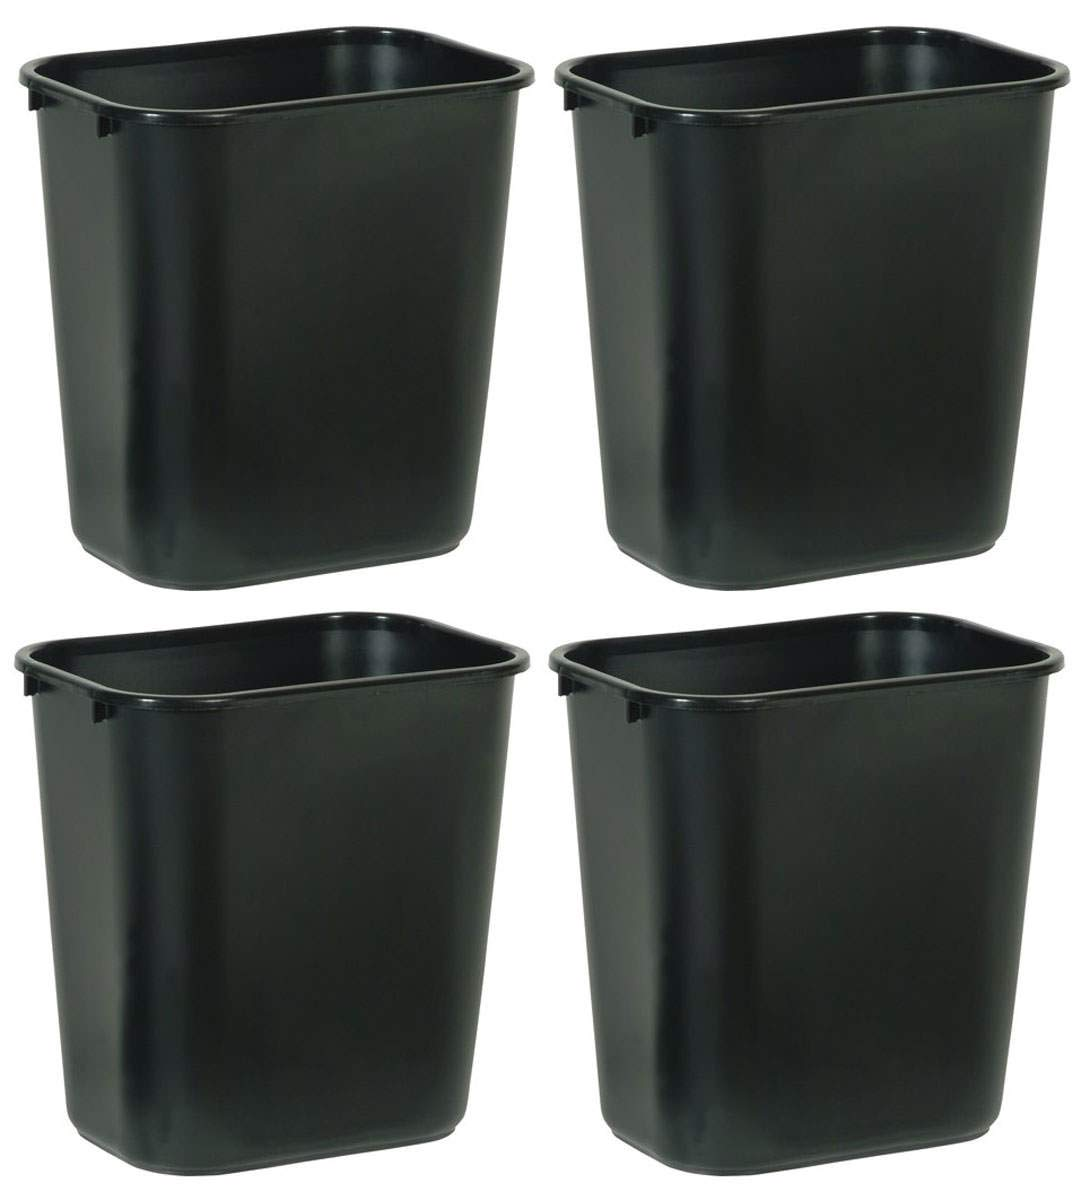 Rubbermaid Commercial Products NCVBHDGH FG295600BLA Plastic Deskside Wastebasket, 28-1/8-quart, Black, 4 Pack